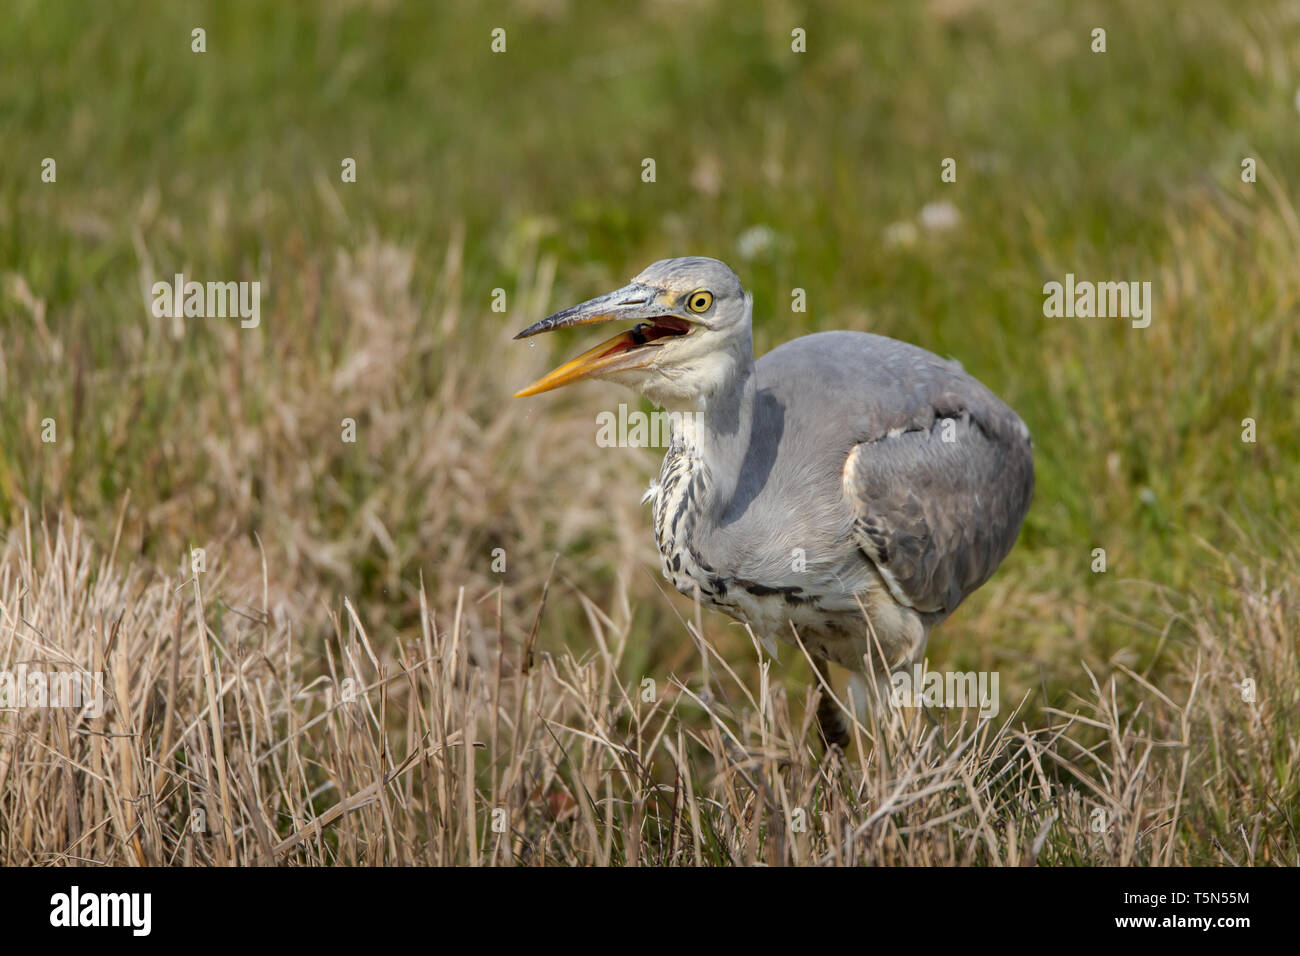 Grey Heron swallowing a fish - Stock Image